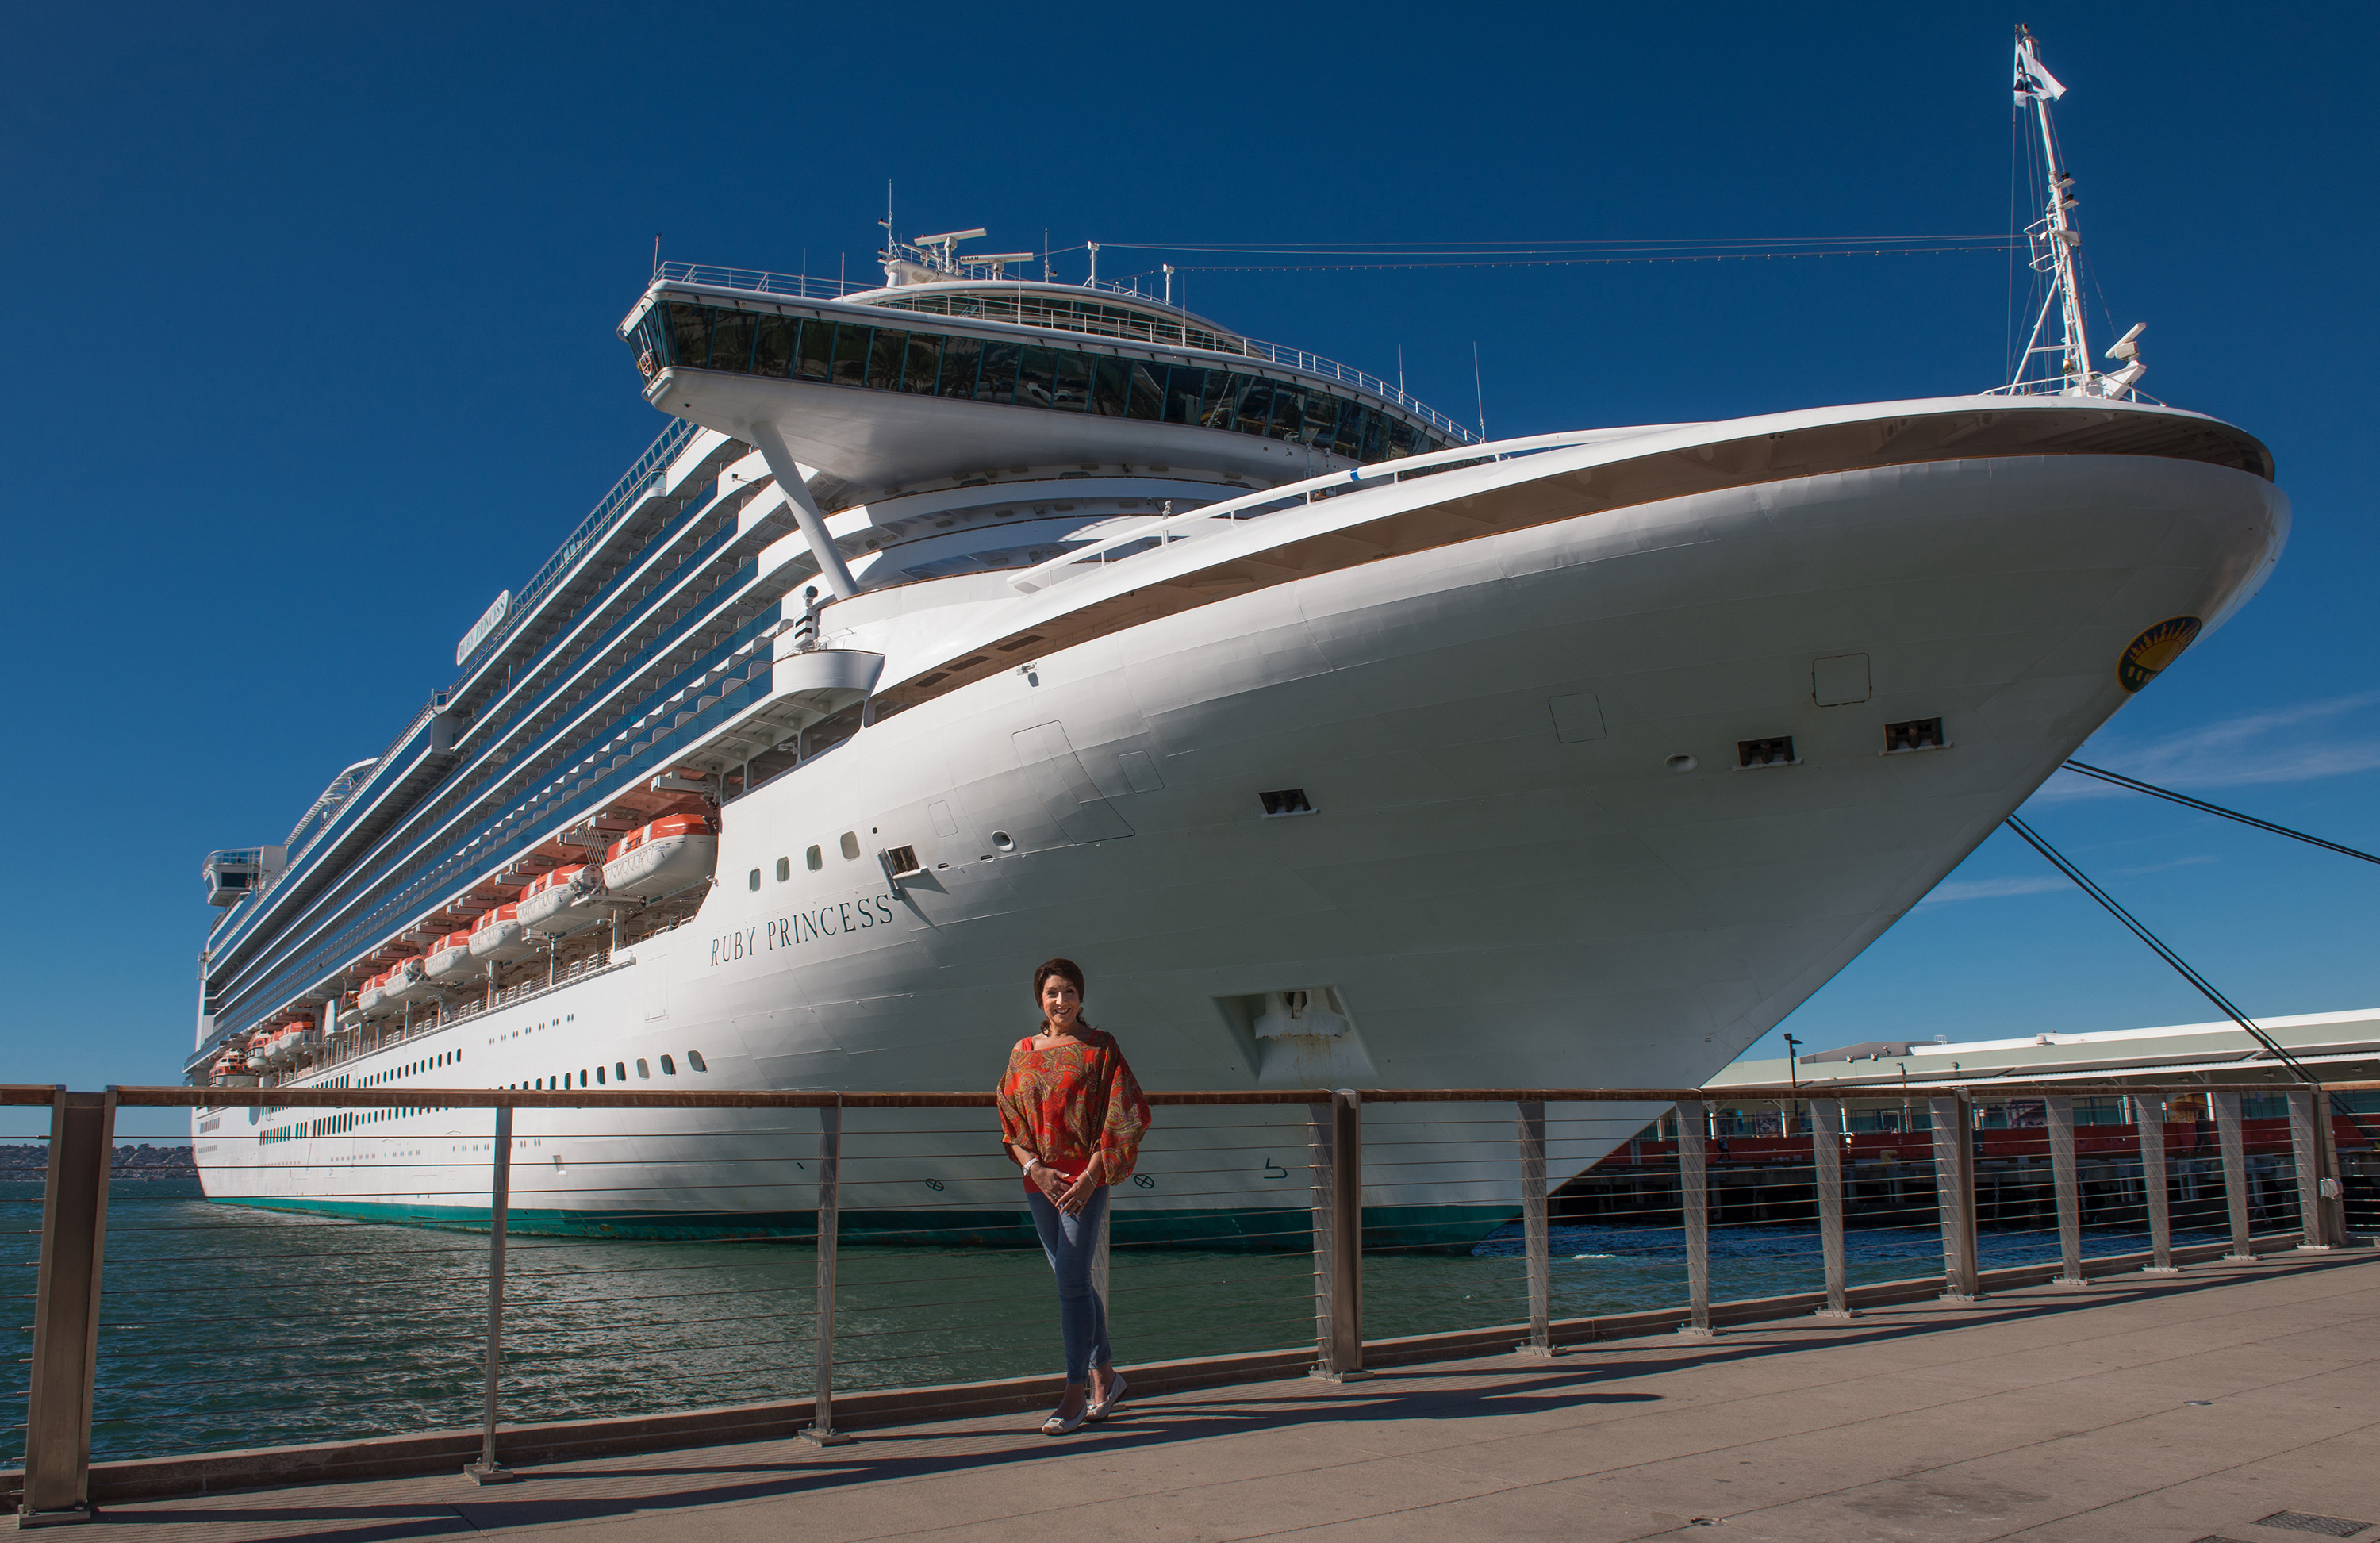 Jane McDonald in front of Princess Cruises' Ruby Princess. Photo by RobComeau.com for CH5 UK